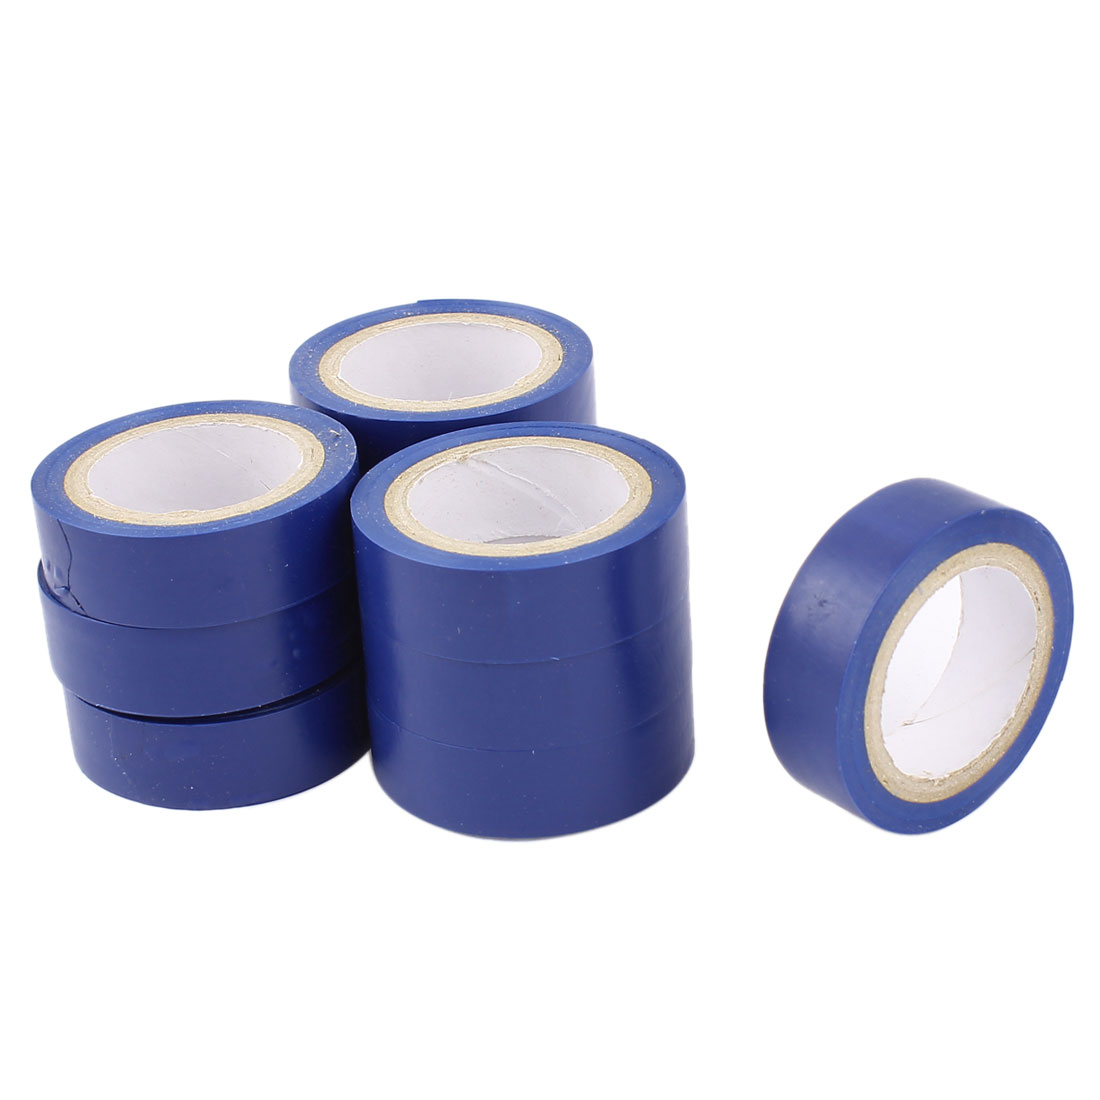 33Ft Long 15mm Wide PVC Self-adhesive Electrical Insulation Tape Blue 10 Rolls